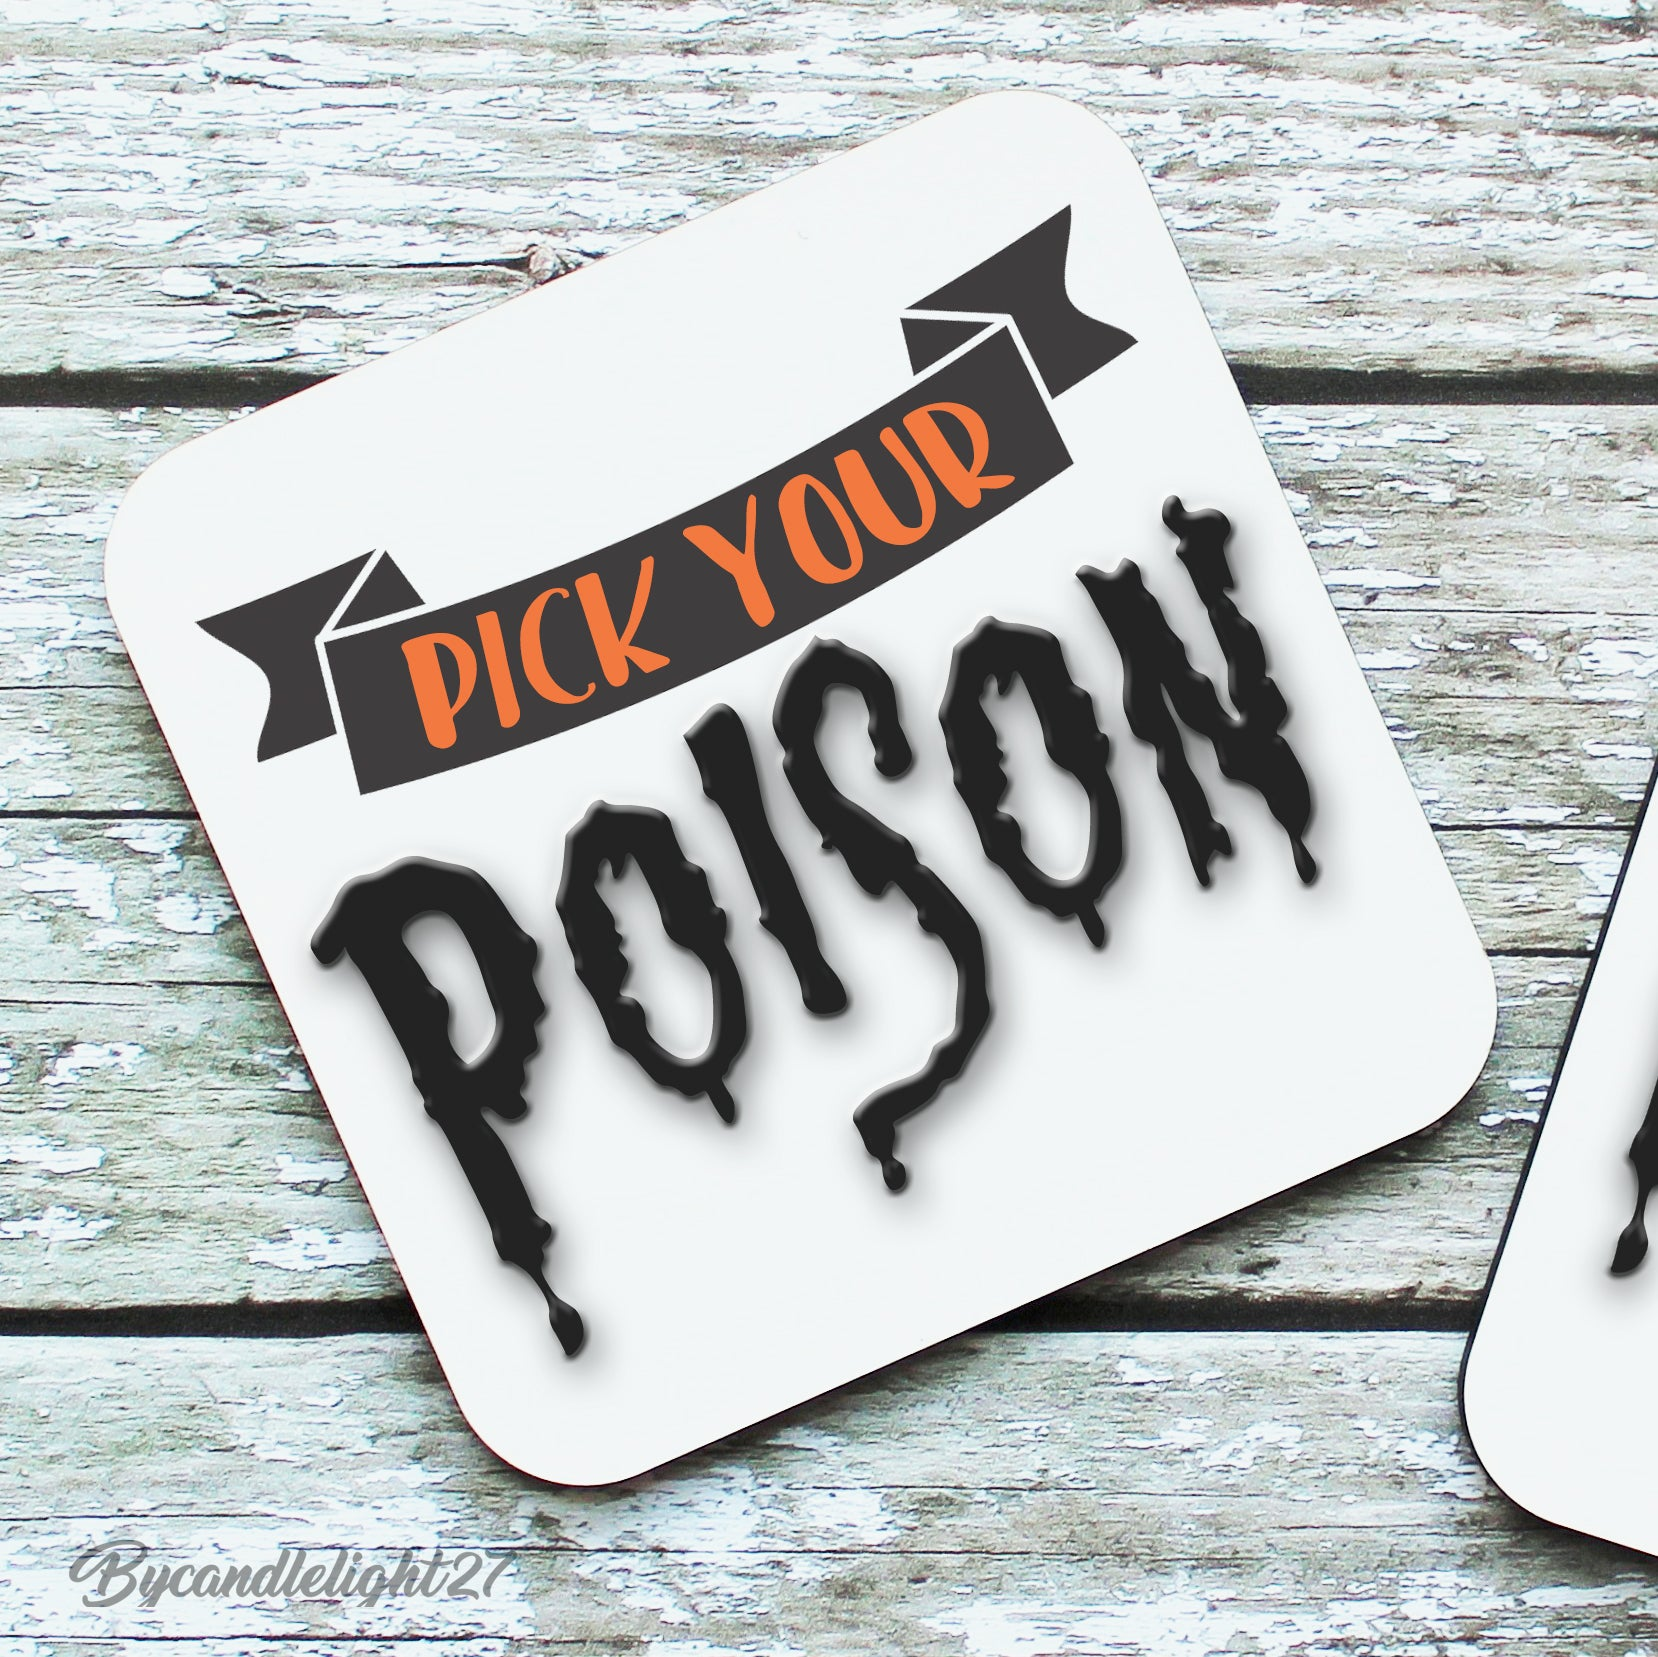 Pick your poison - Hardwood Coasters